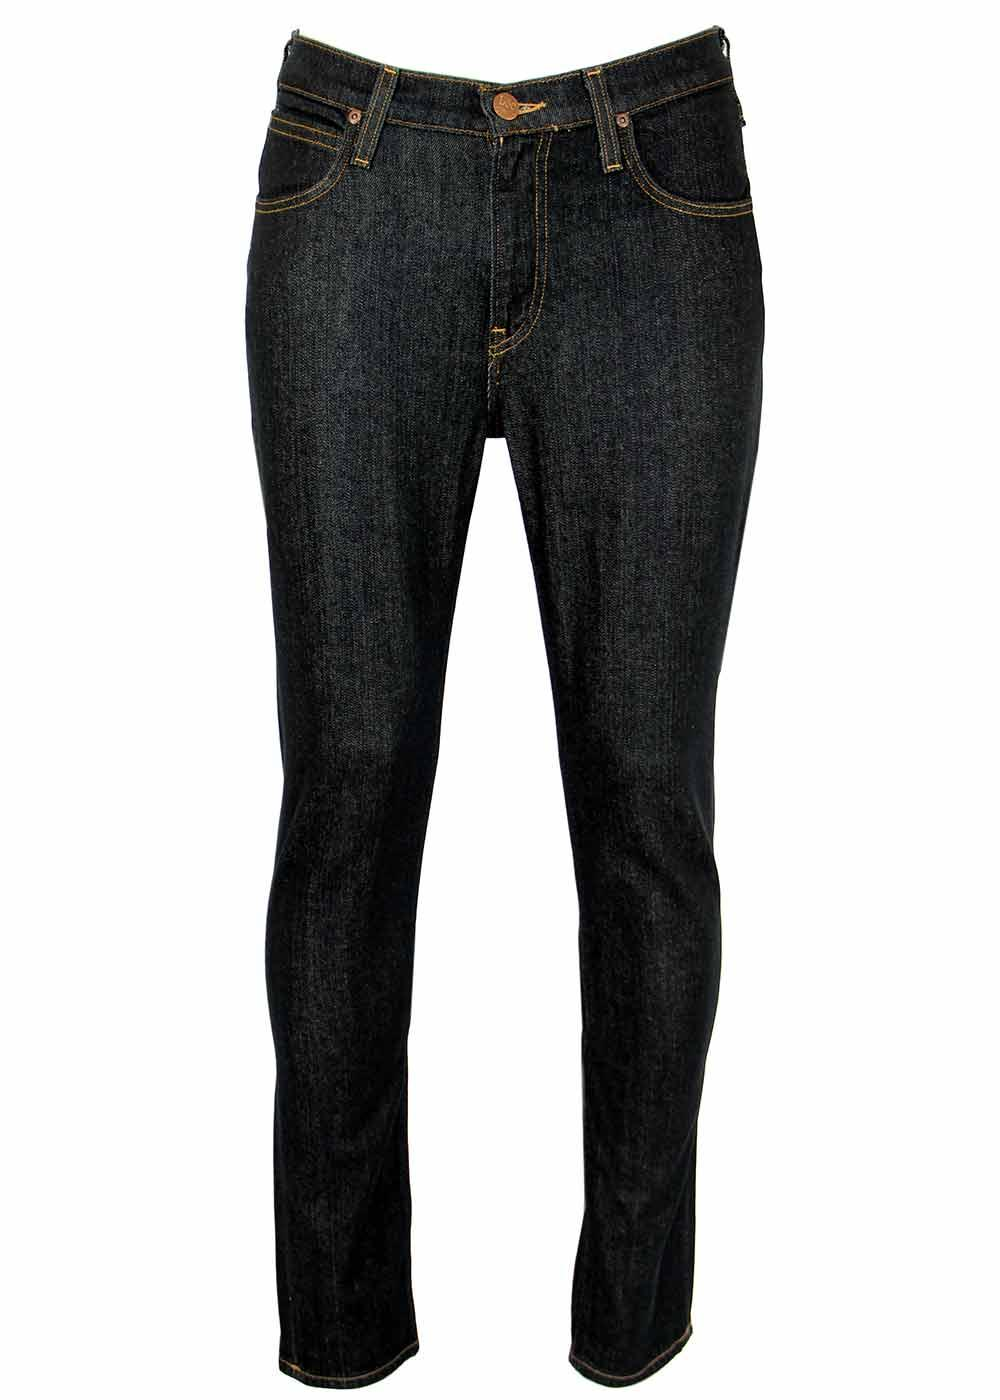 Arvin LEE Retro Mod Regular Tapered Denim Jeans BC